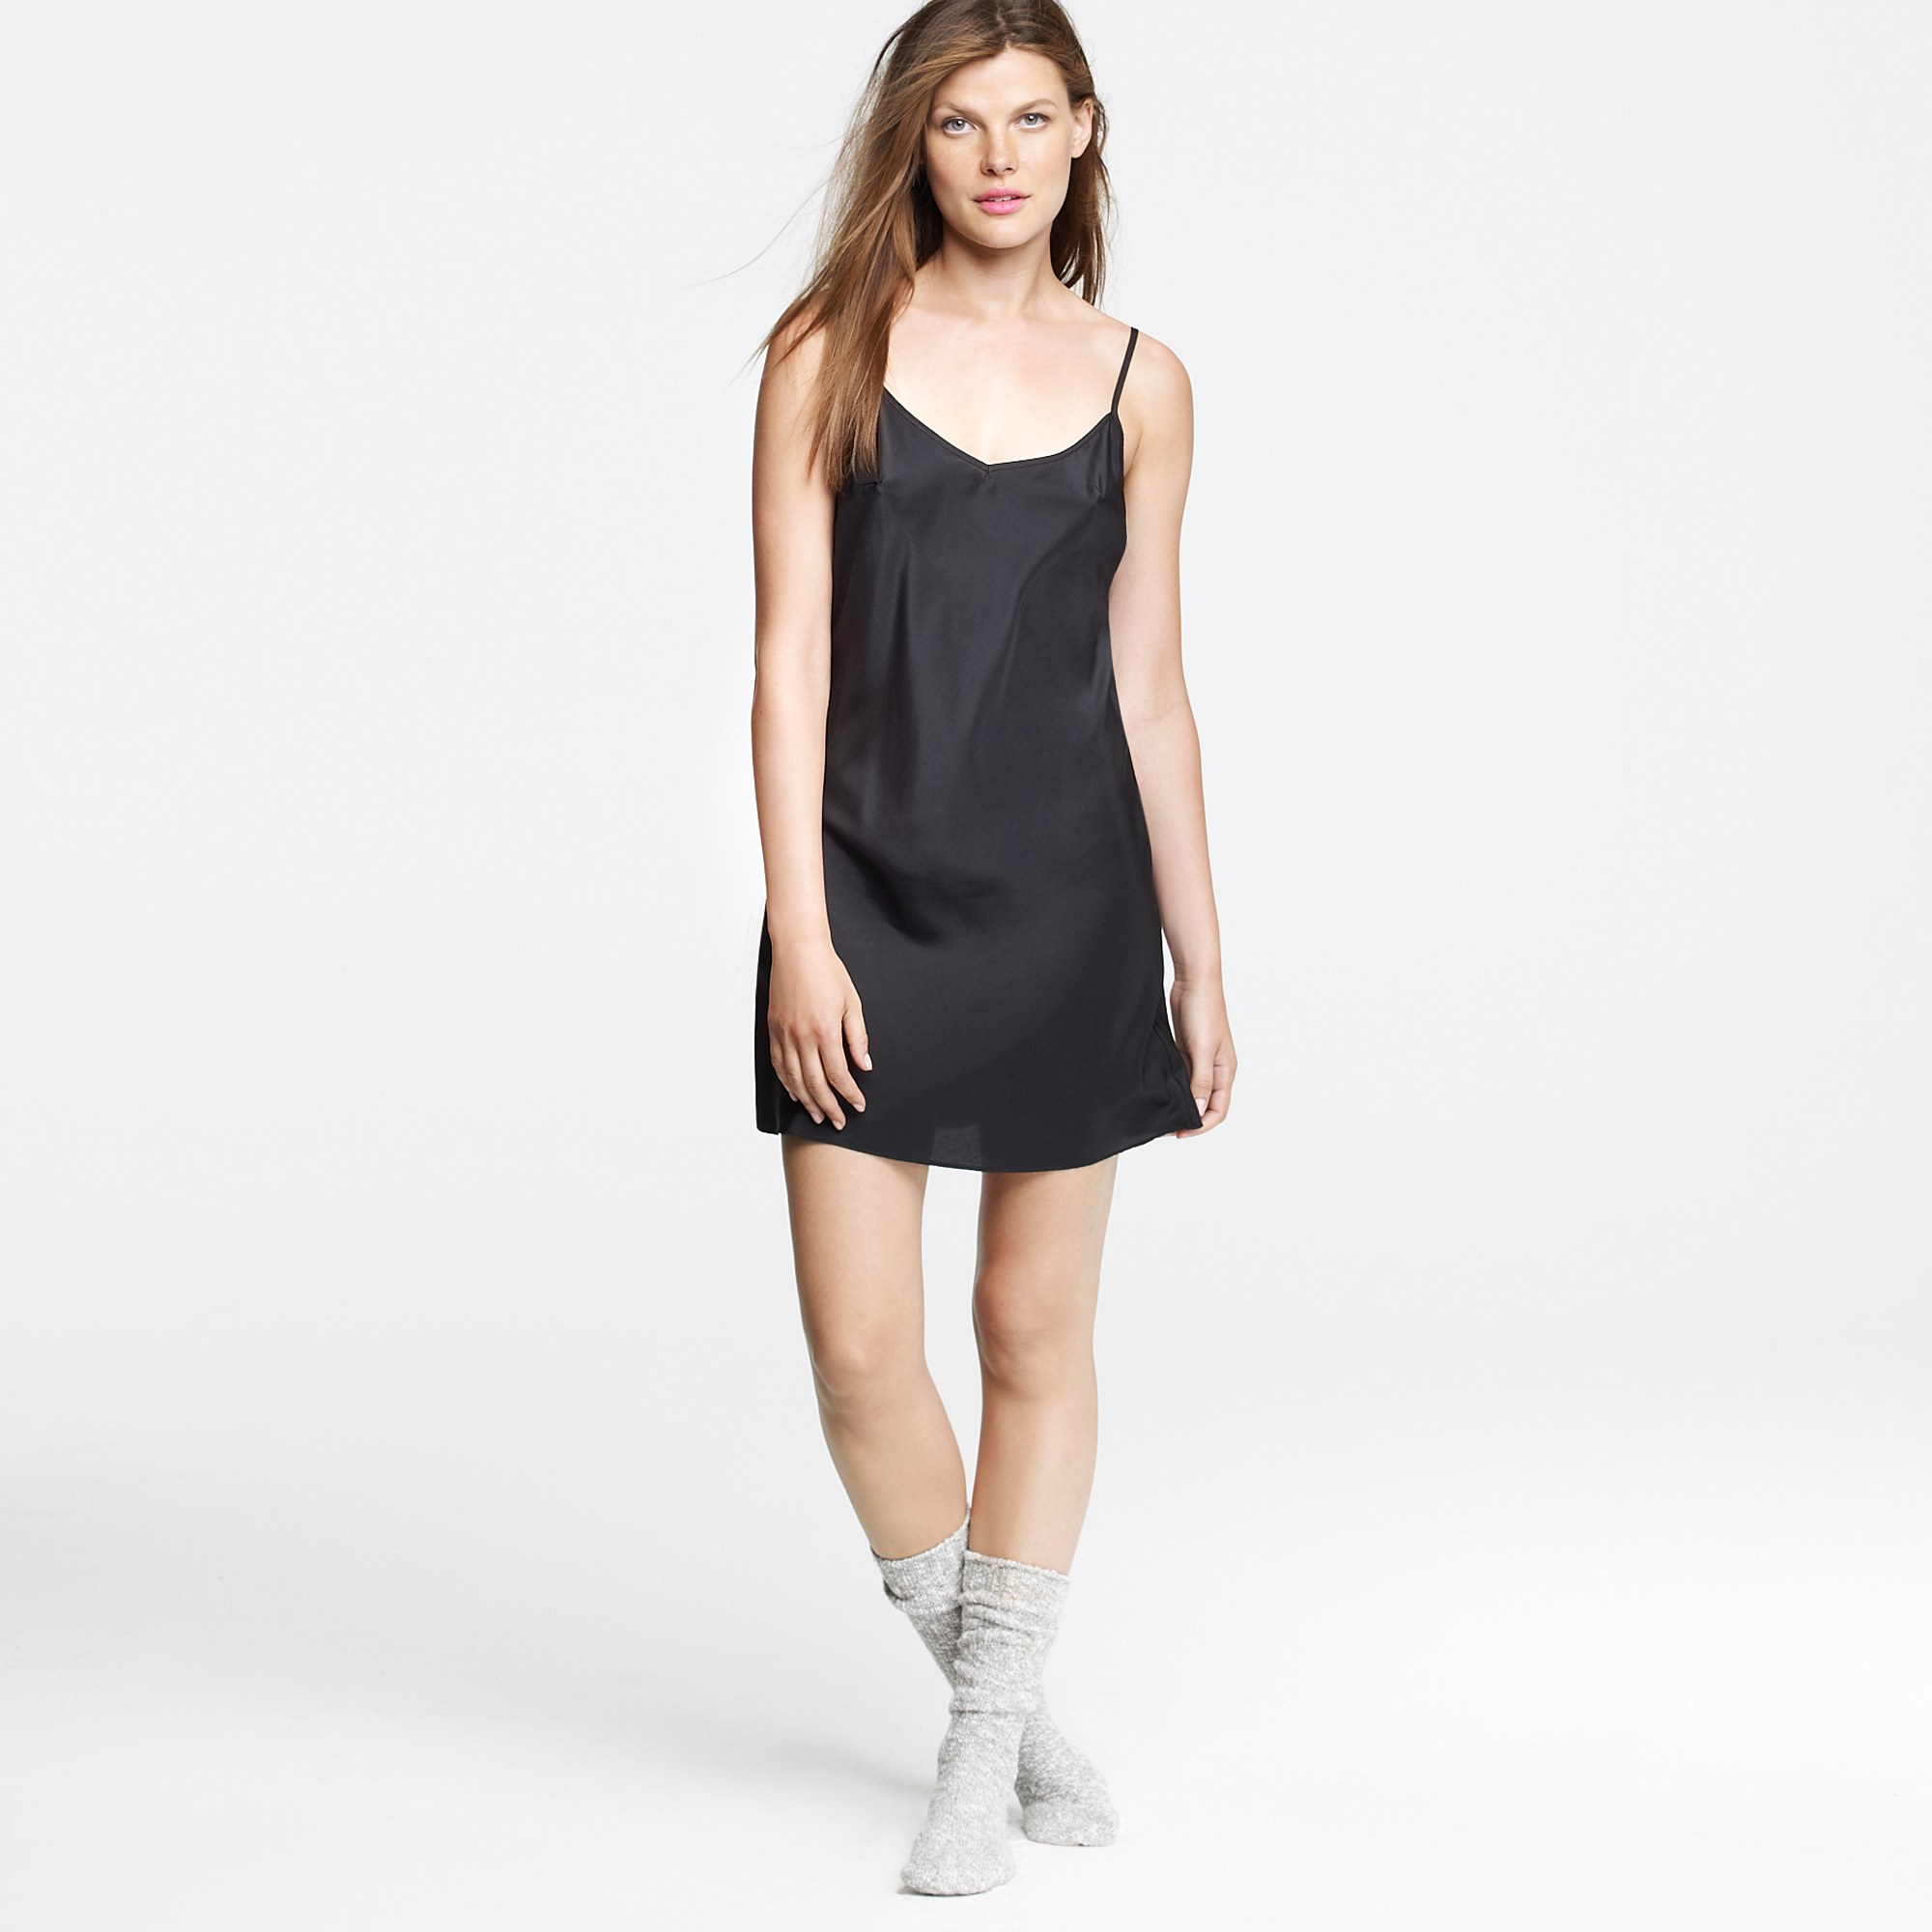 J.crew Silk Slip Dress in Black | Lyst